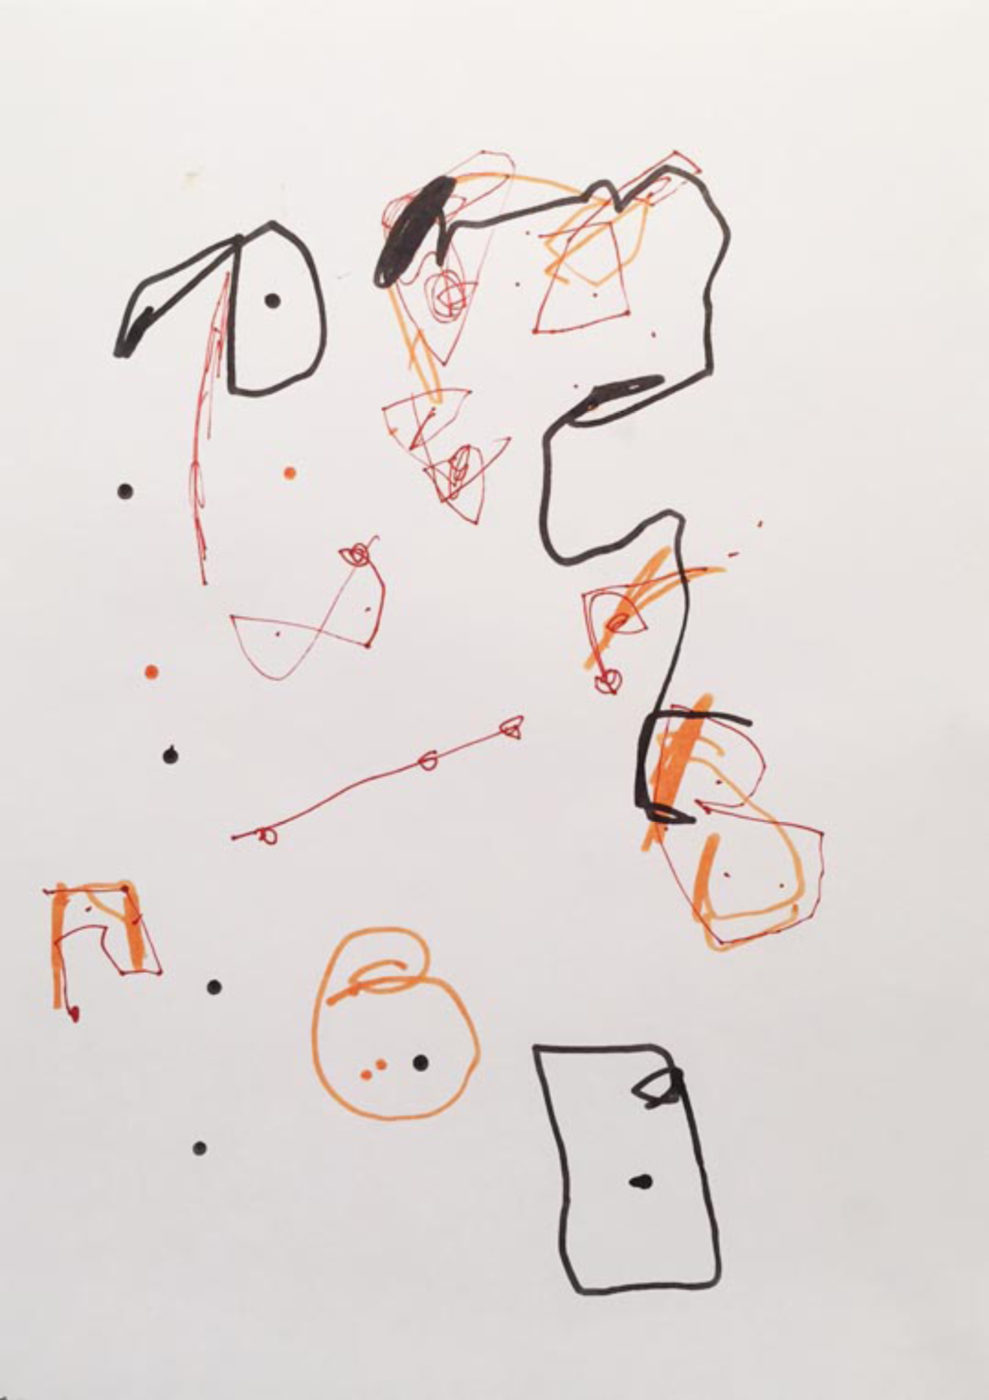 MARC FELD 2003 LITTLE SONG FOR MAURICIO KAGEL 11 Stylo feutre et stylo bille sur papier 21x29, 7 cm